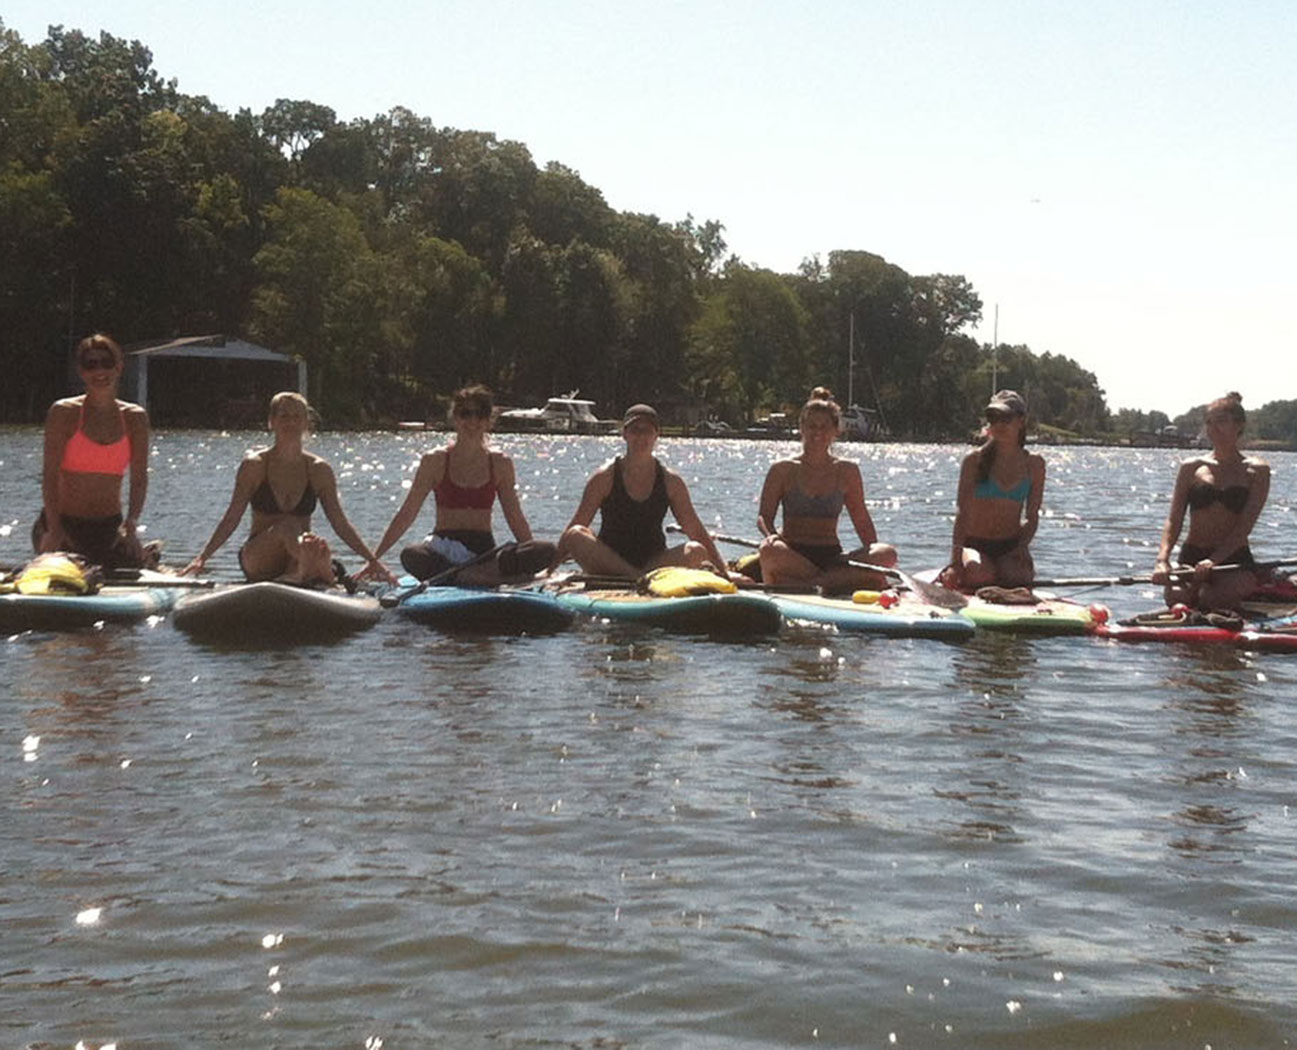 yoga studio and water sport rentals on the South River